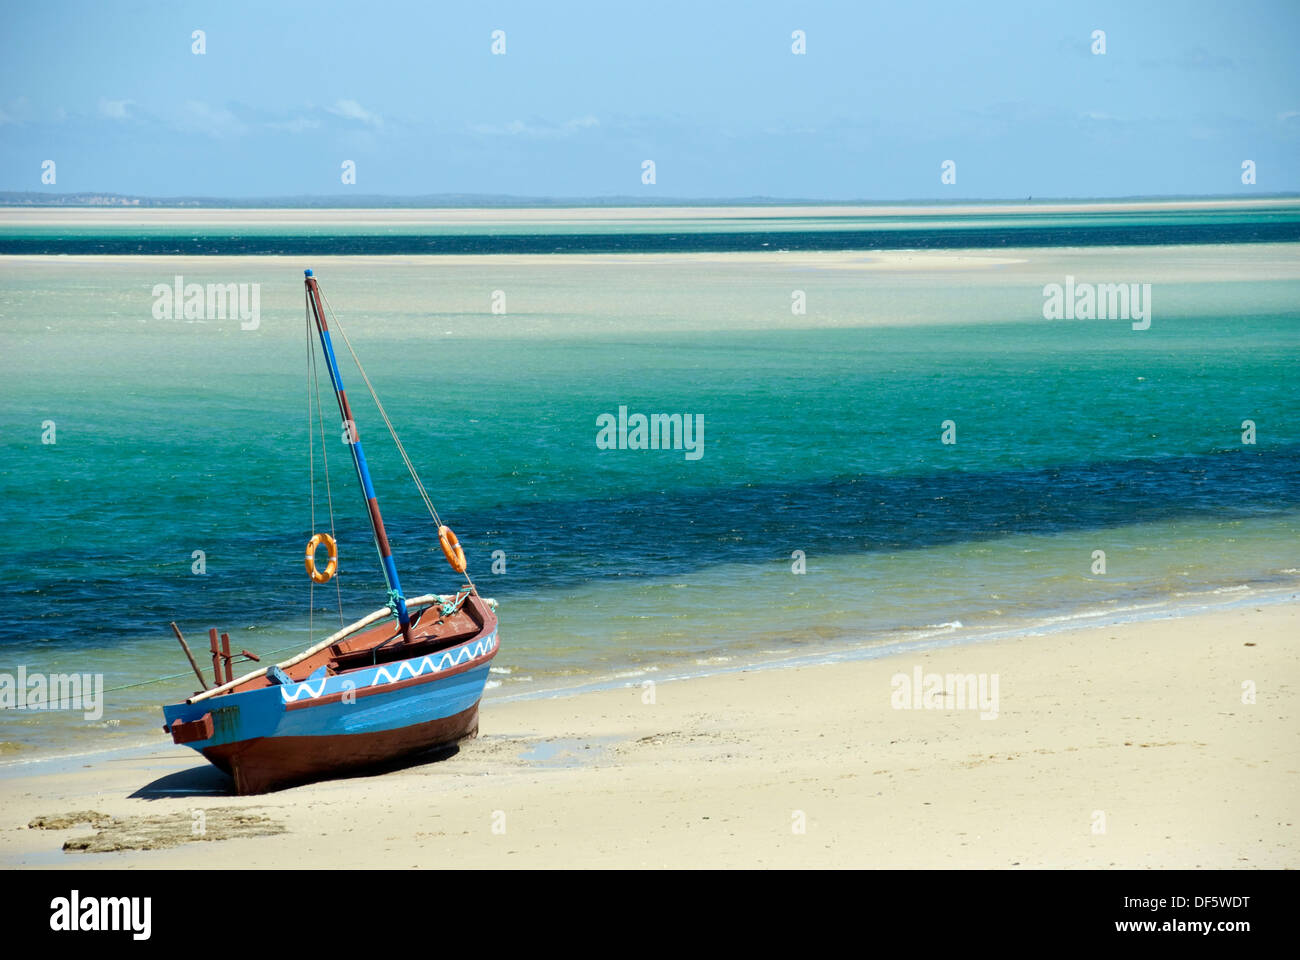 Dhow at the water's edge, Mozambique. Landscape - Stock Image